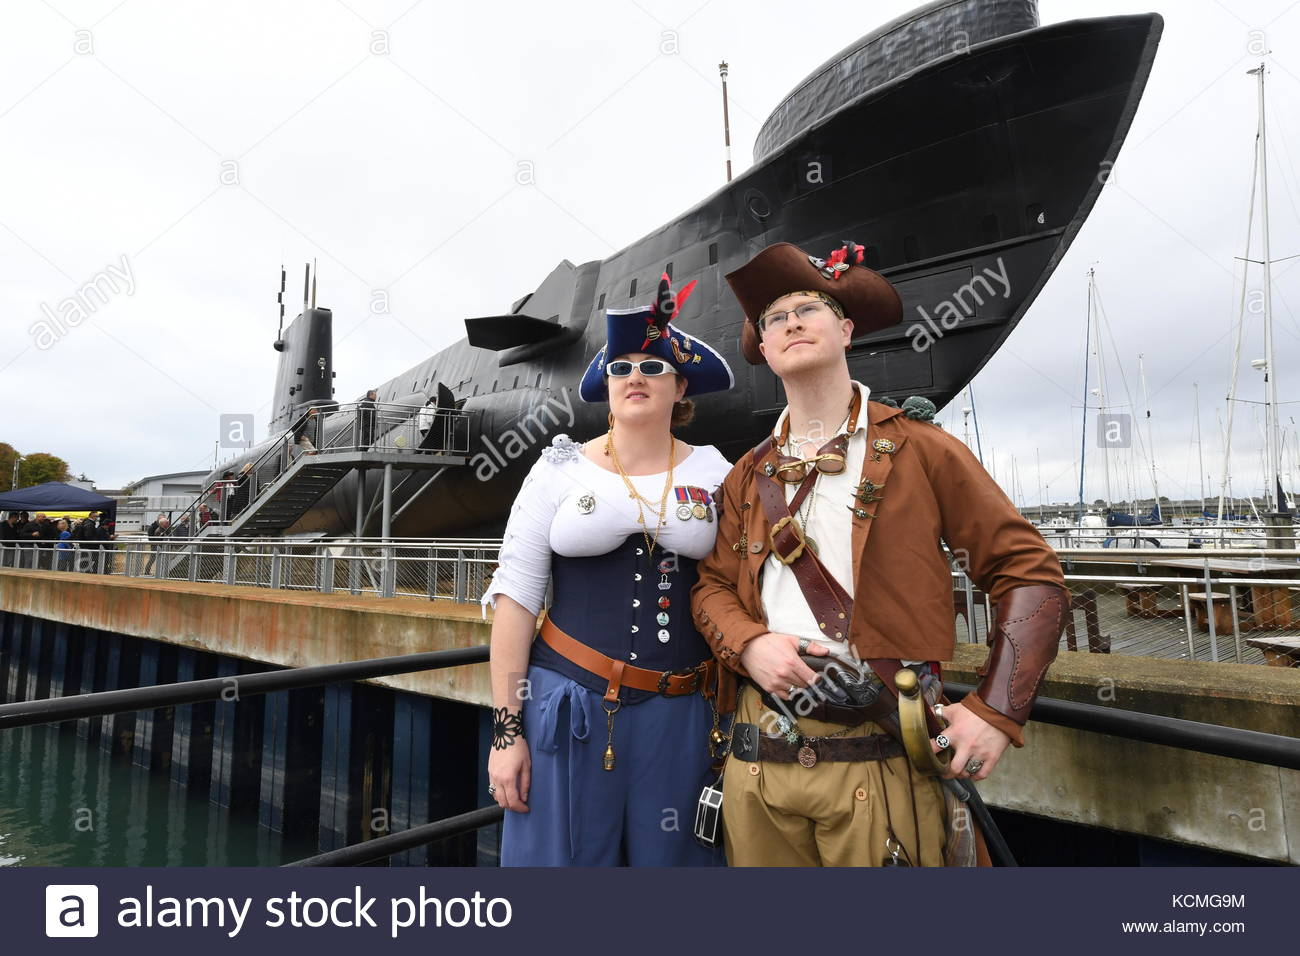 The Royal Navy Submarine Museum held its first ever Subaquatic Steampunk Weekend in Gosport, Hampshire - Stock Image